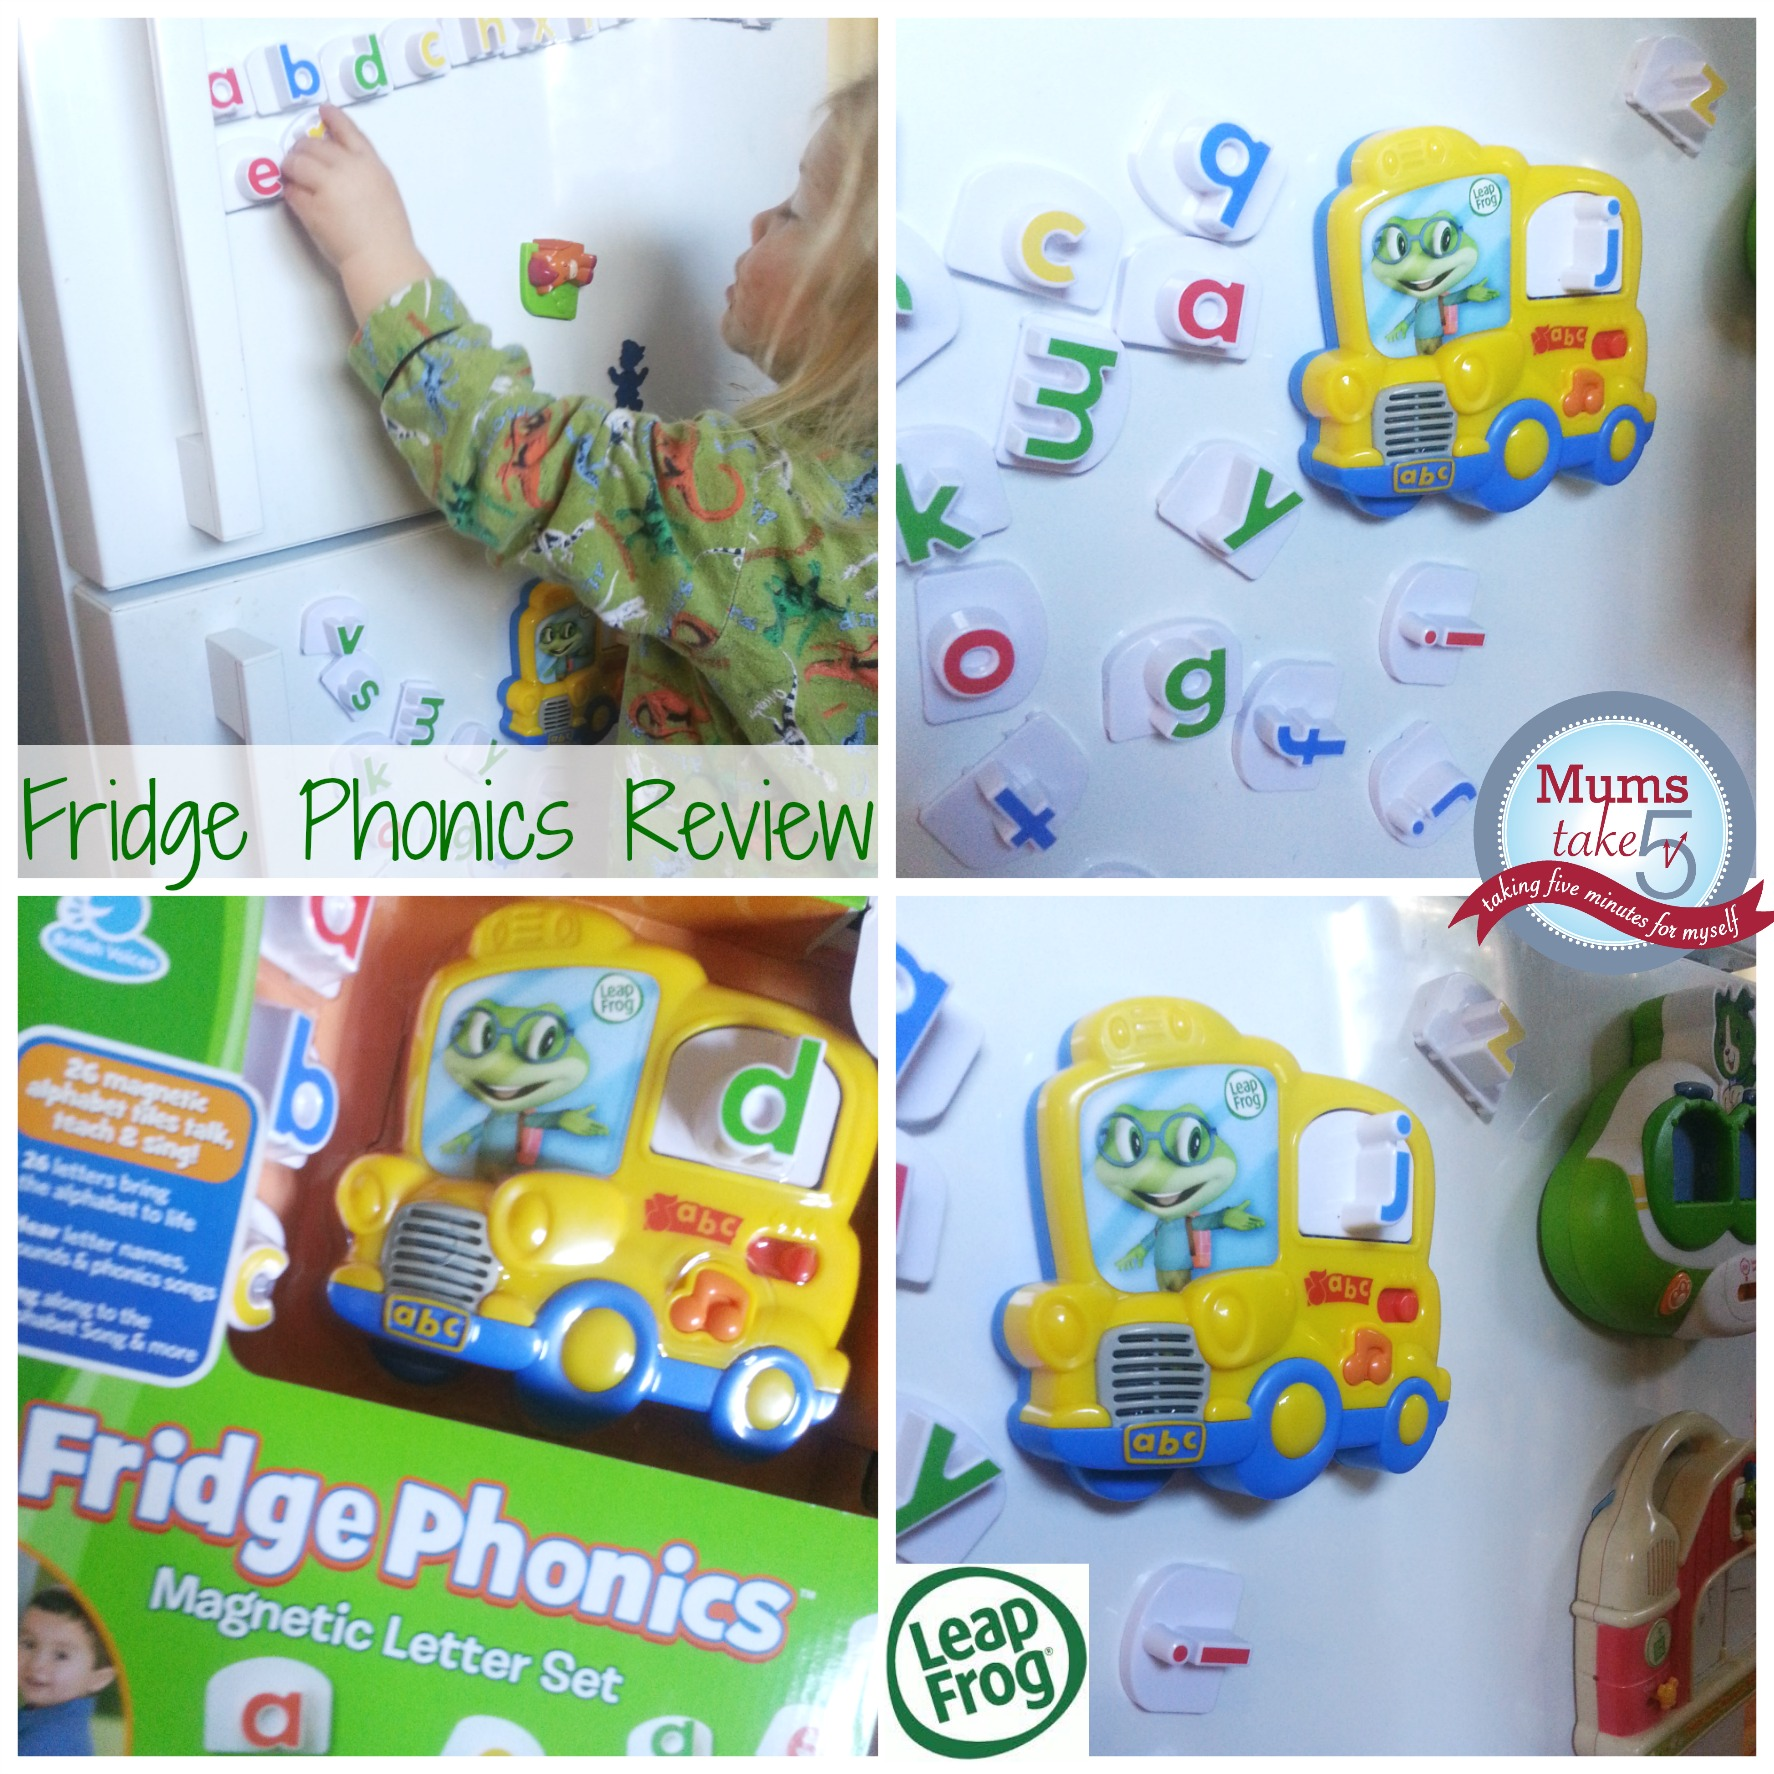 Leap Frog Fridge Phonics Review